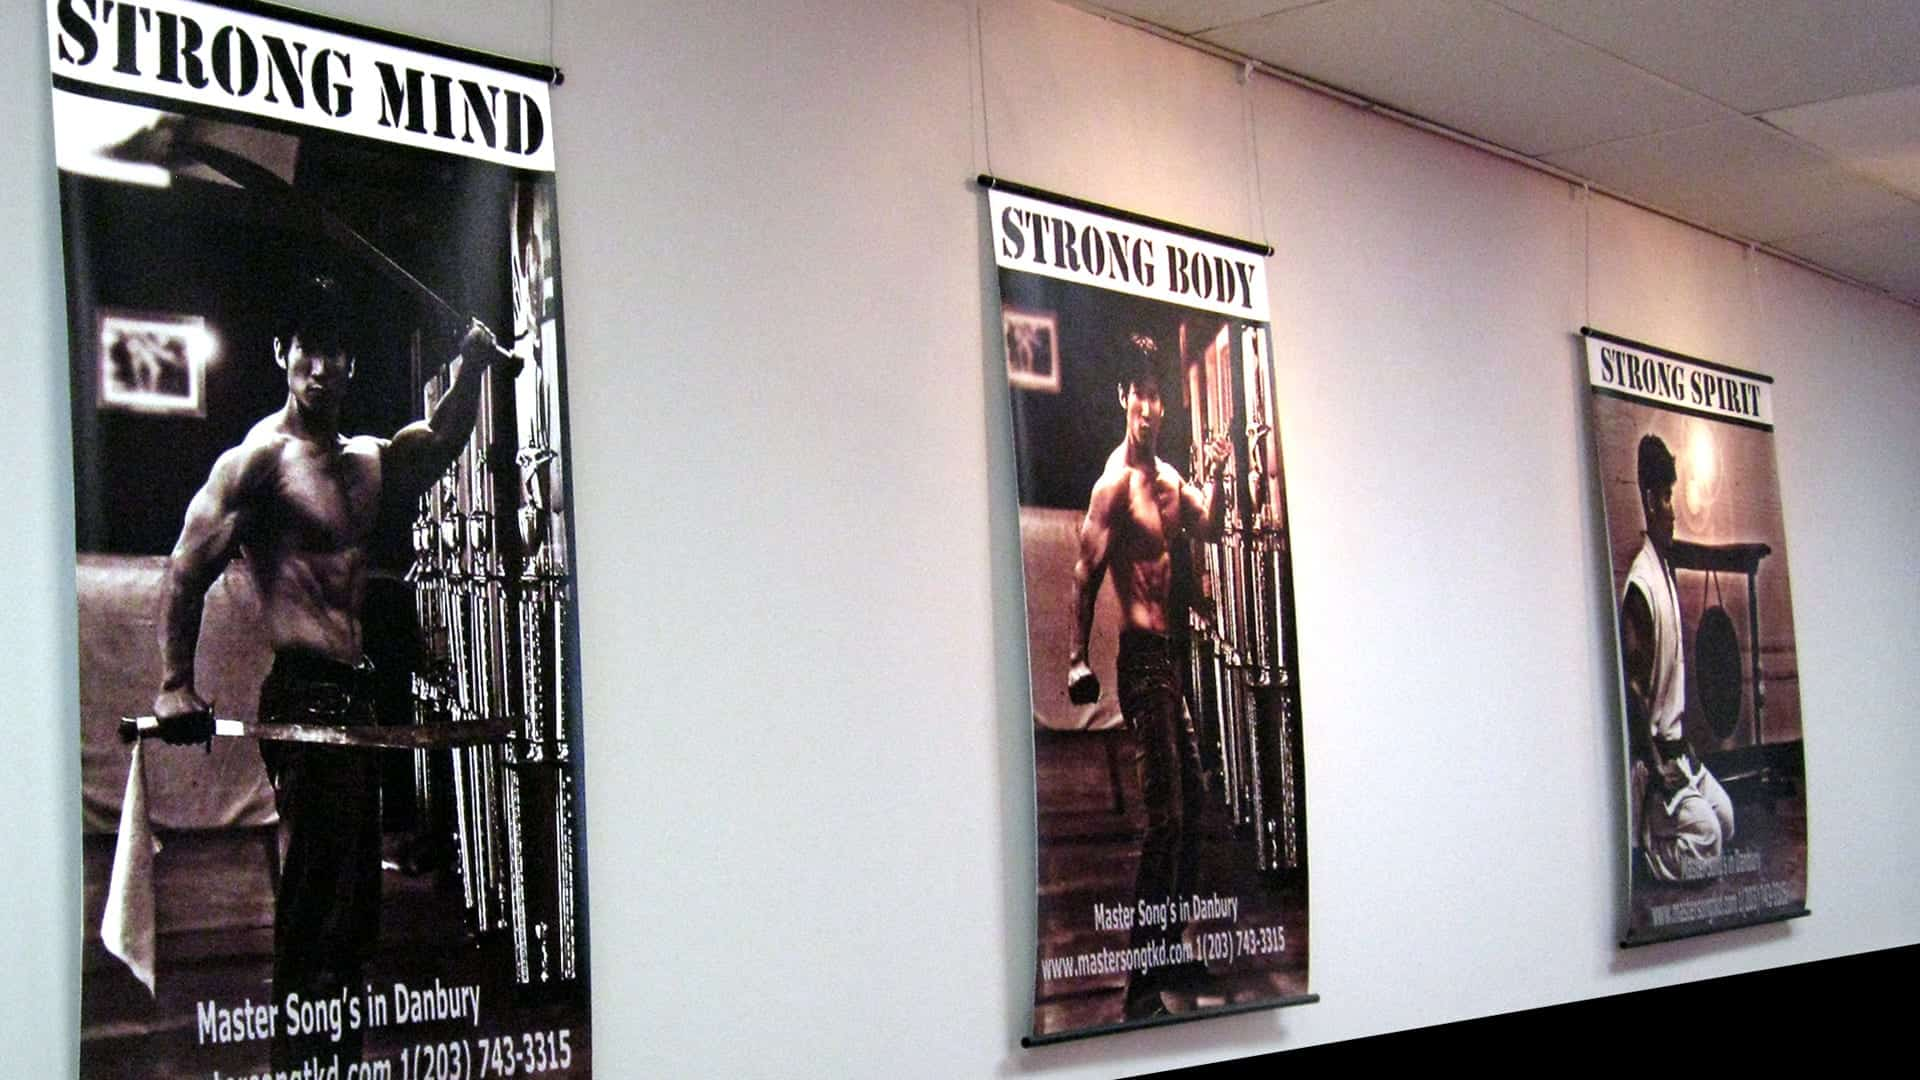 Banners & Posters - Master Song's in Danbury